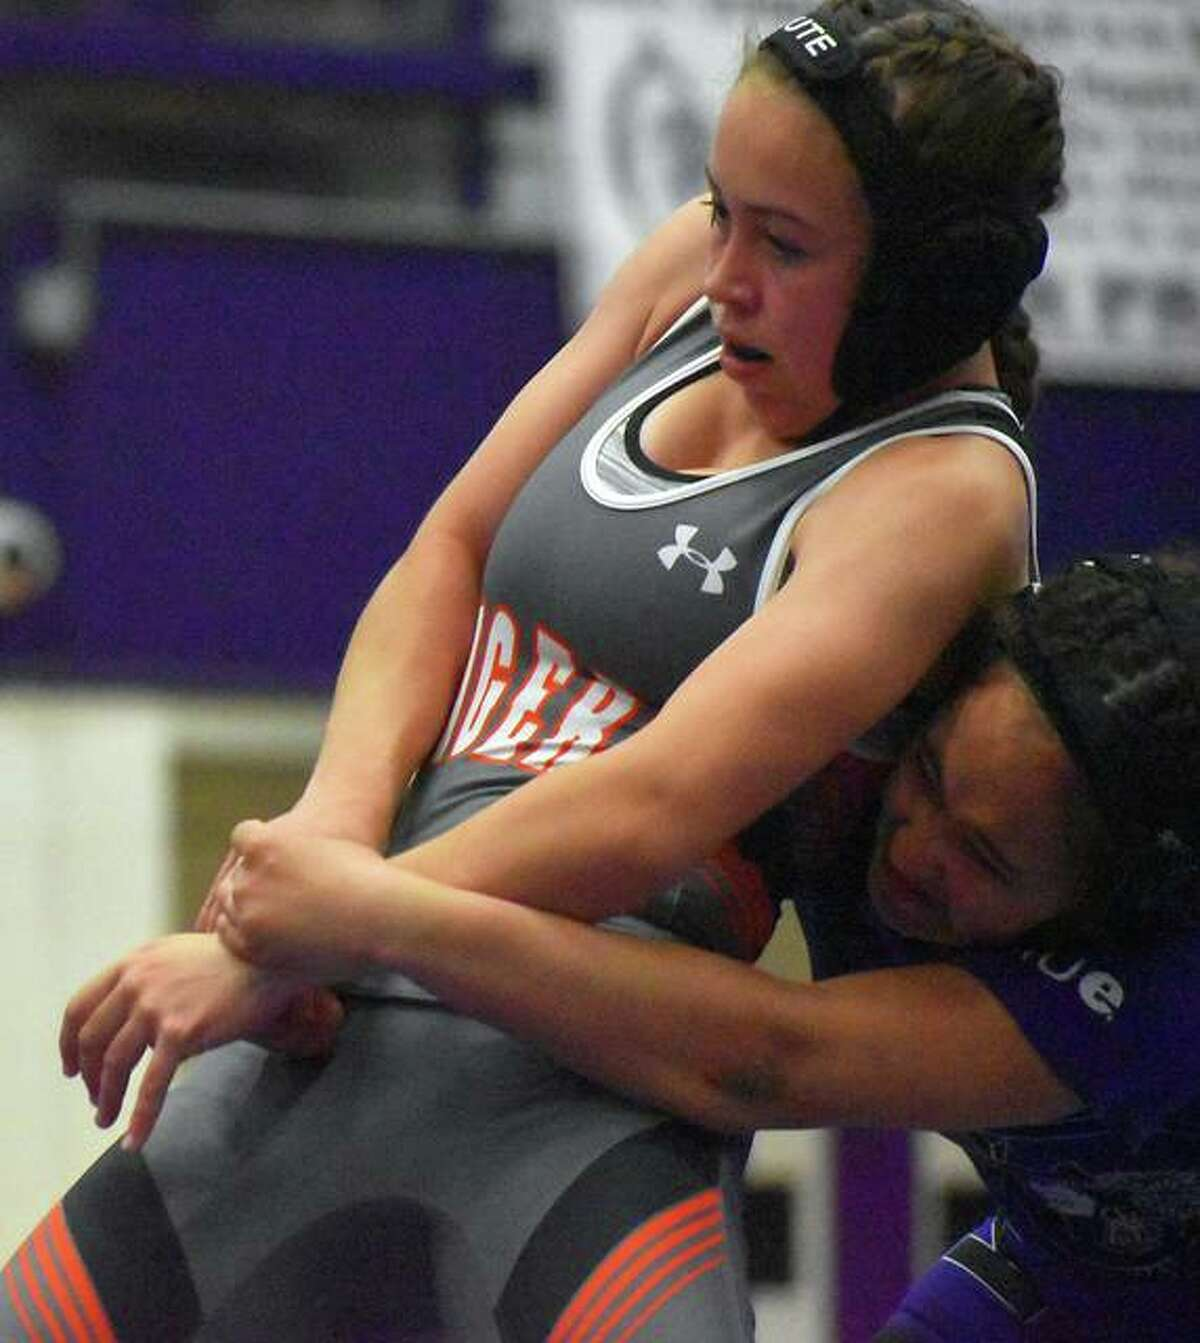 Edwardsville's Olivia Coll tries to break out of a hold early in the second round of her match at 113 pounds against Collinsville.